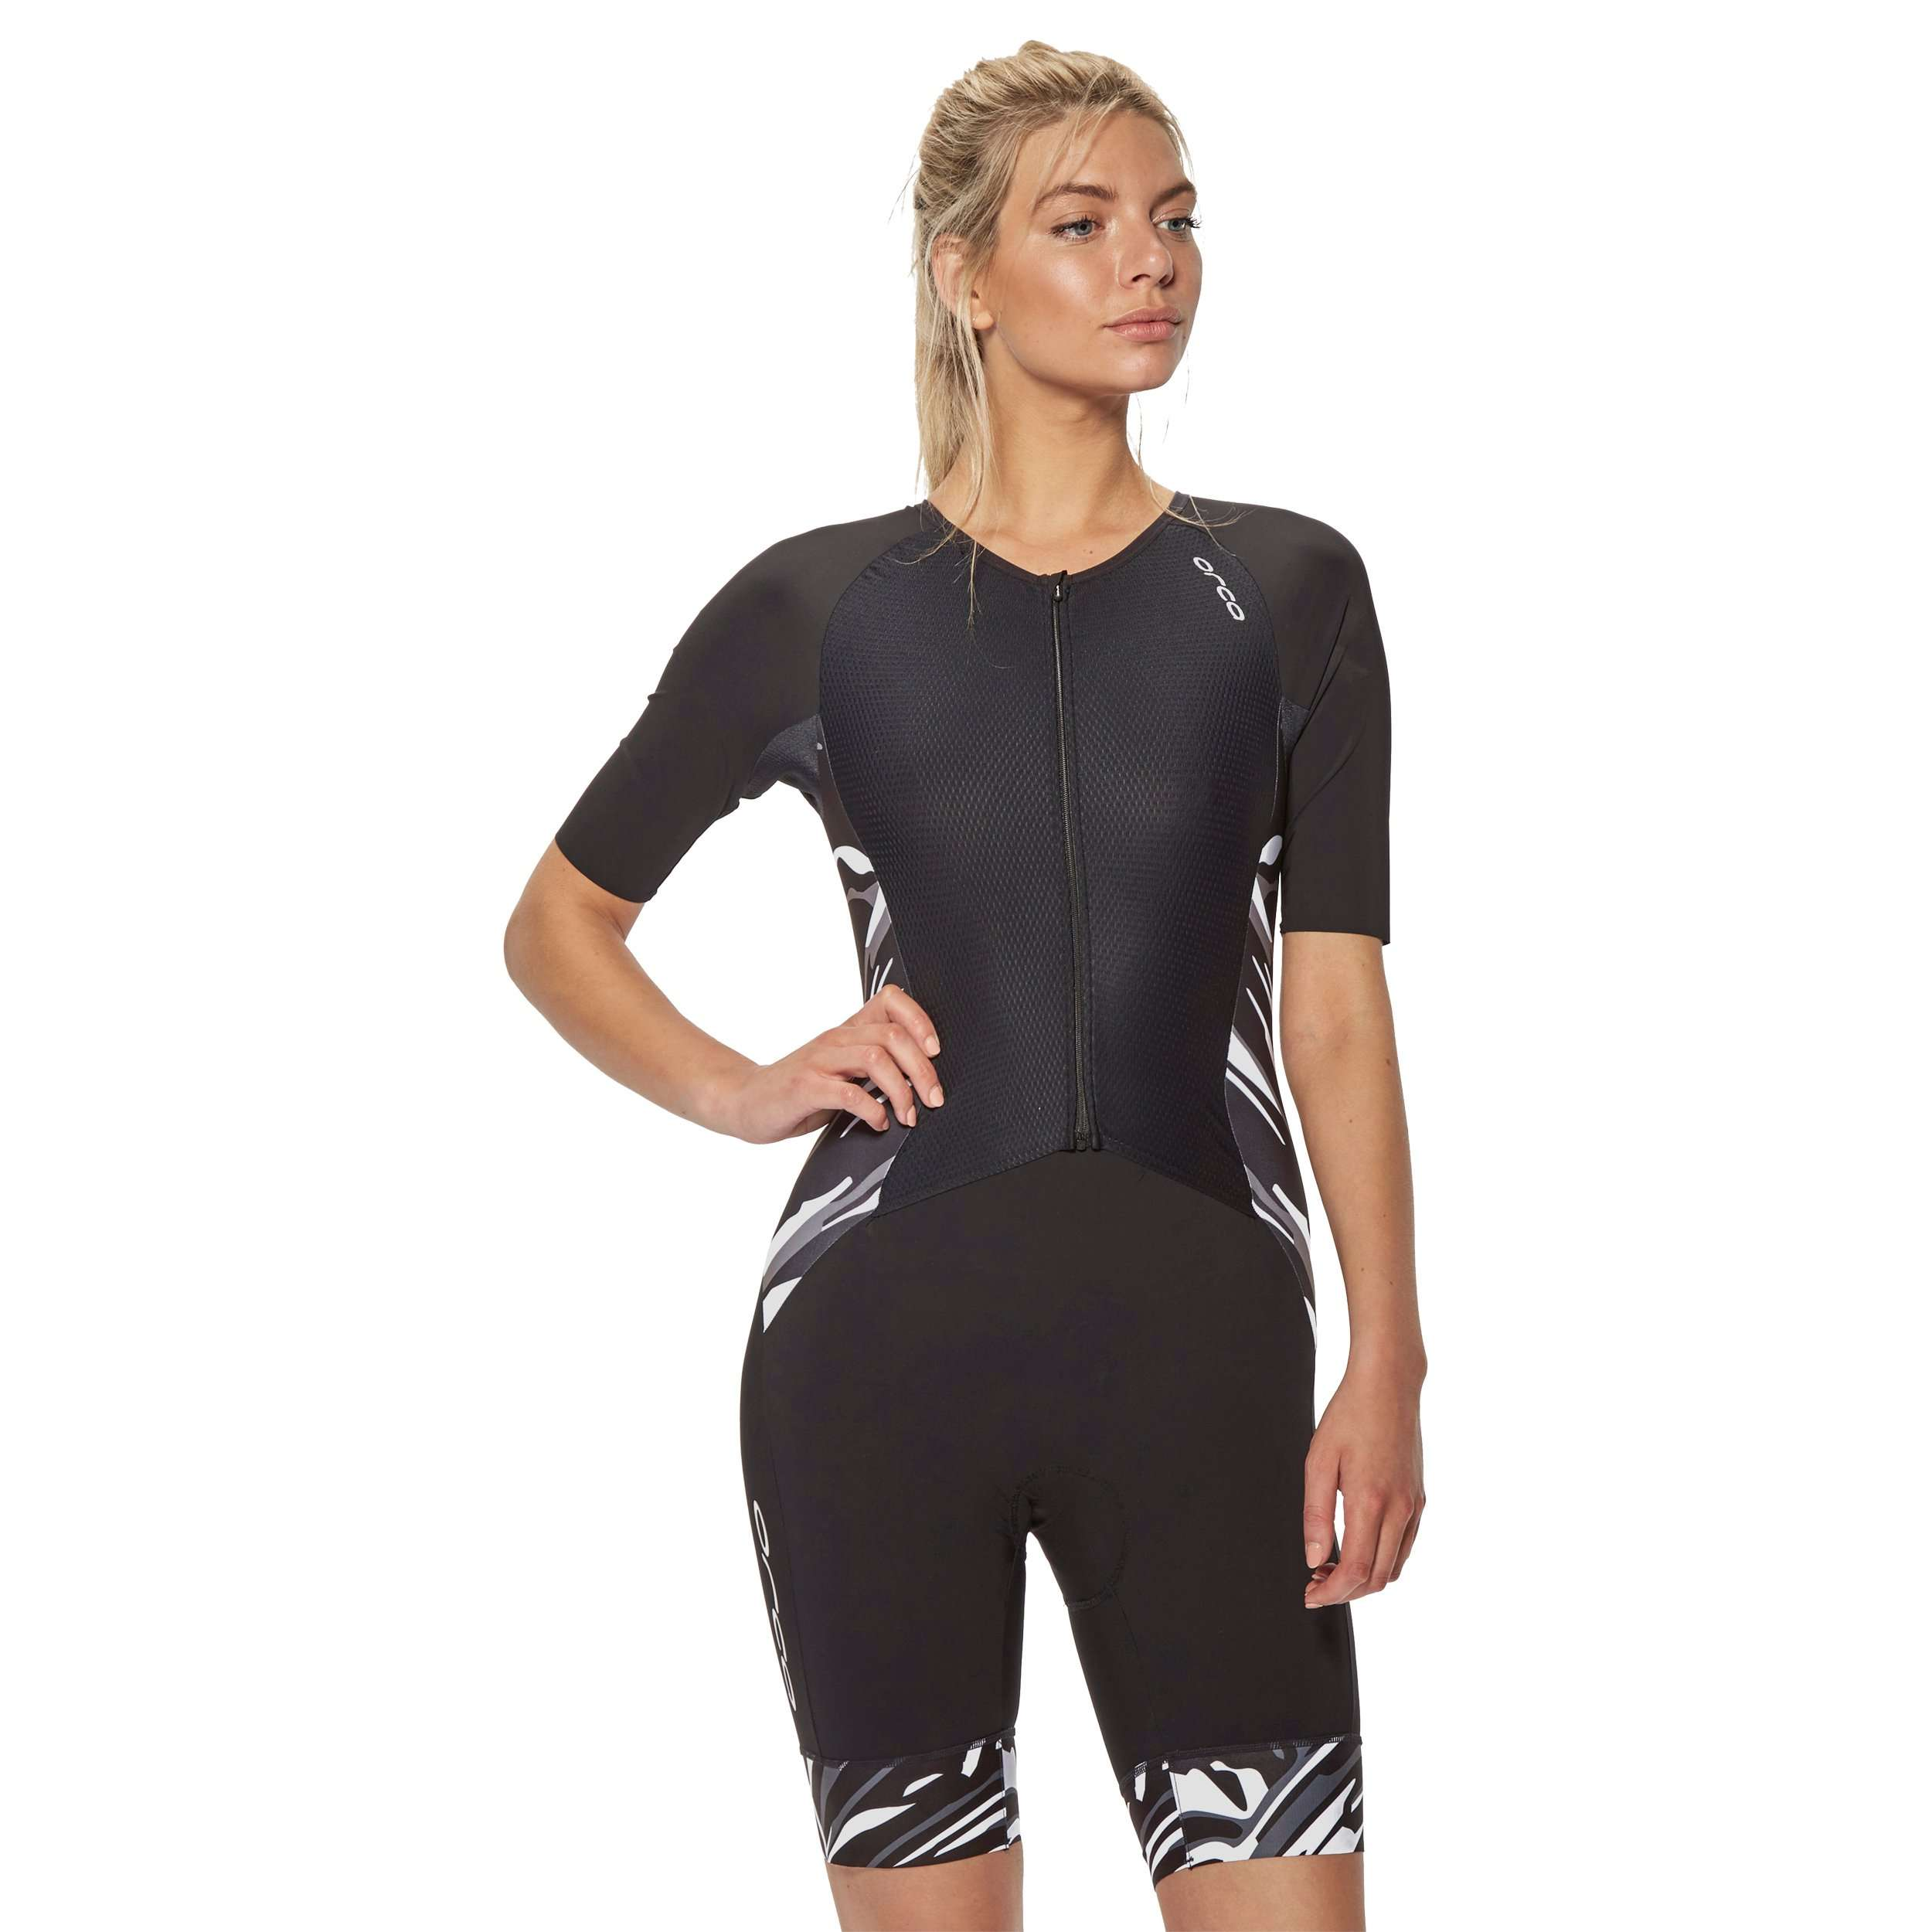 Orca Kompress SS Women's Race Suit